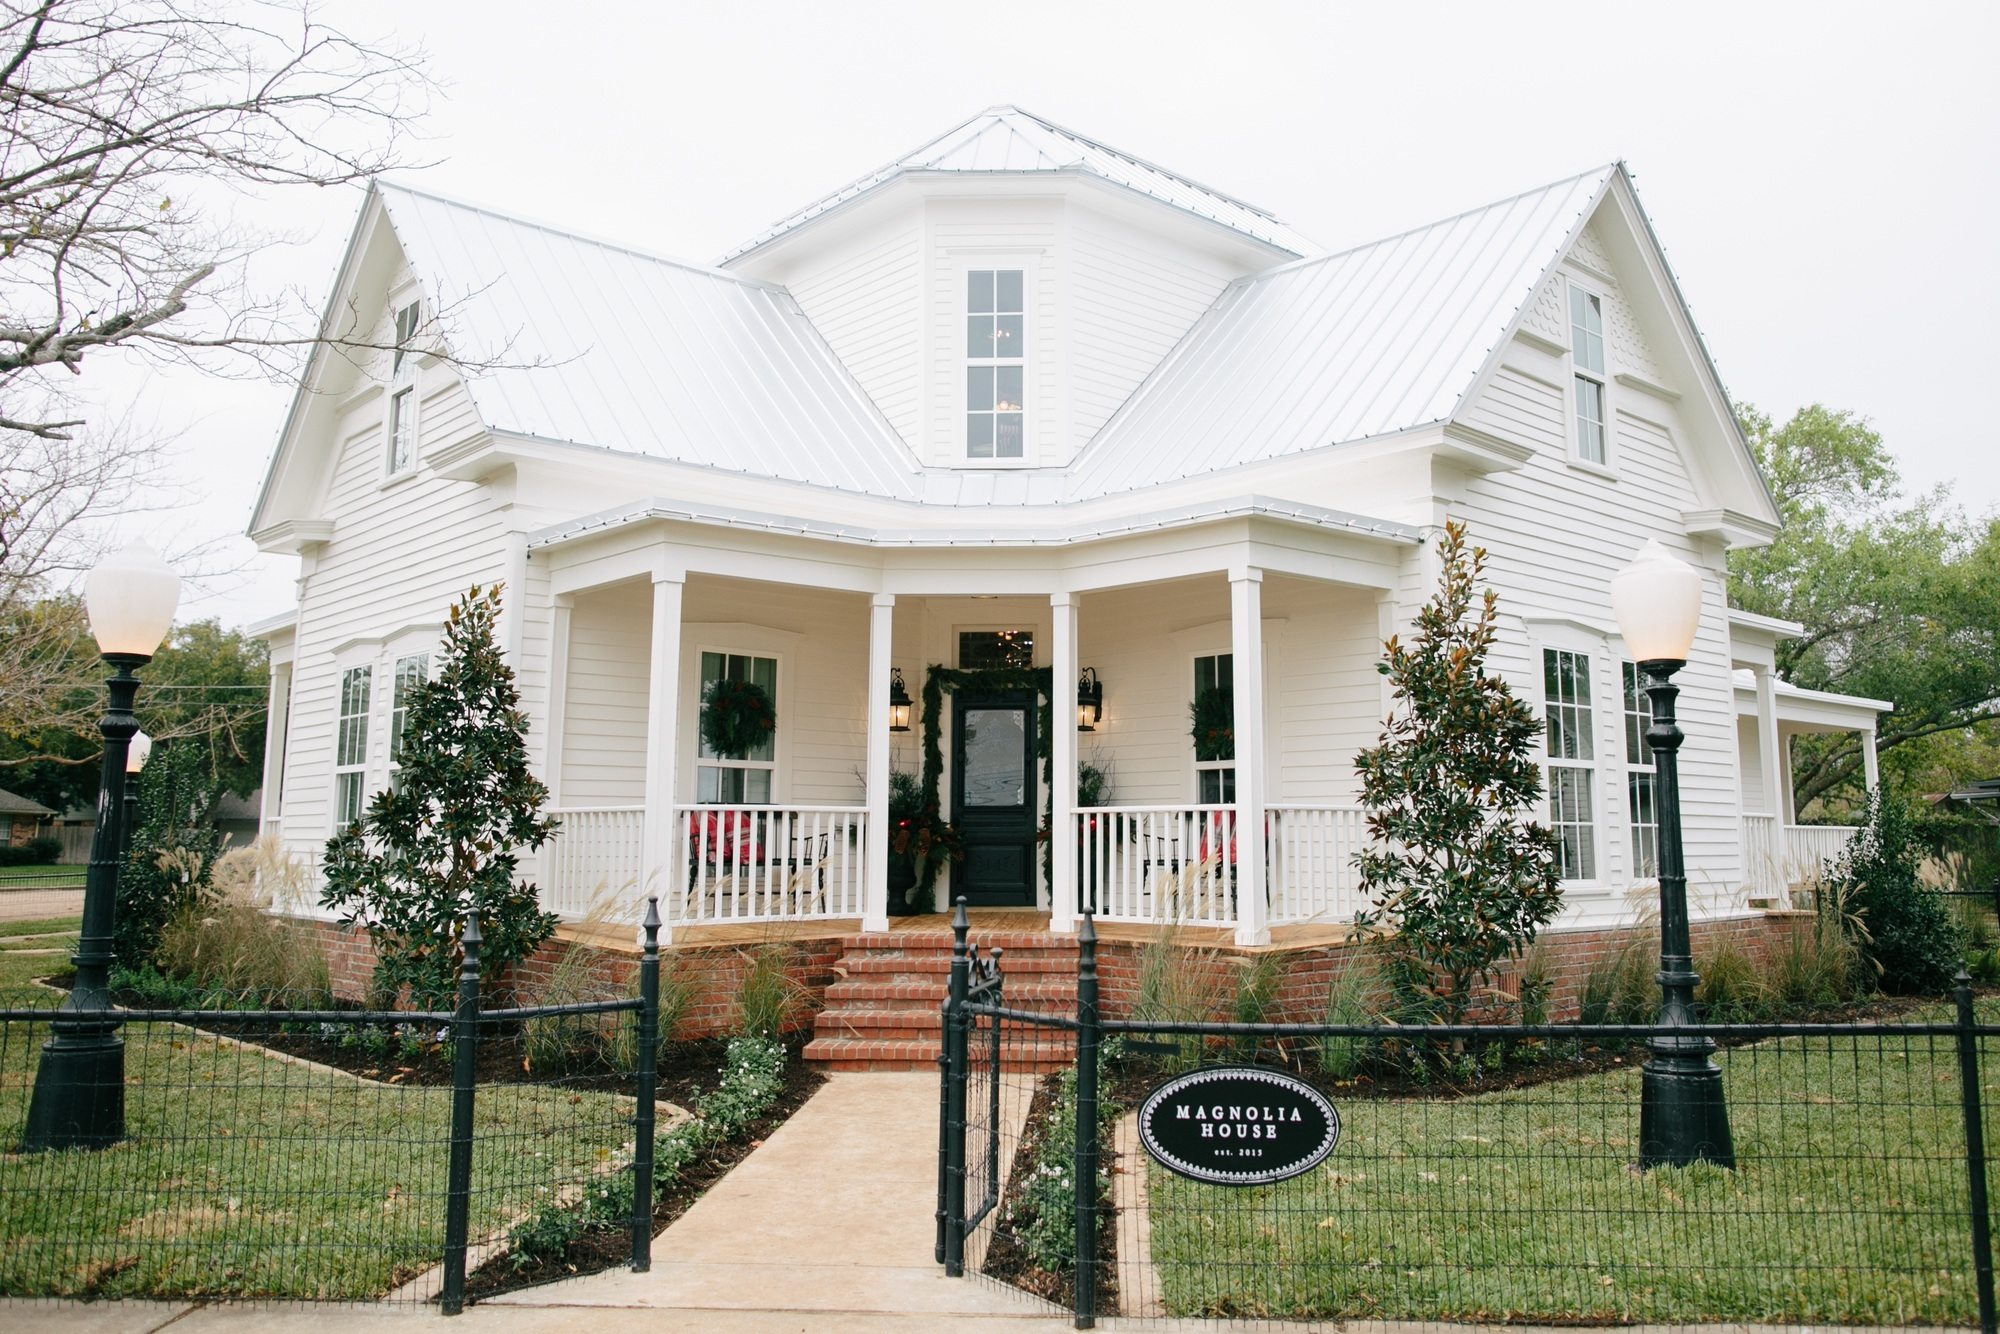 Magnolia house the new b b by fixer upper for Joanna gaines home designs